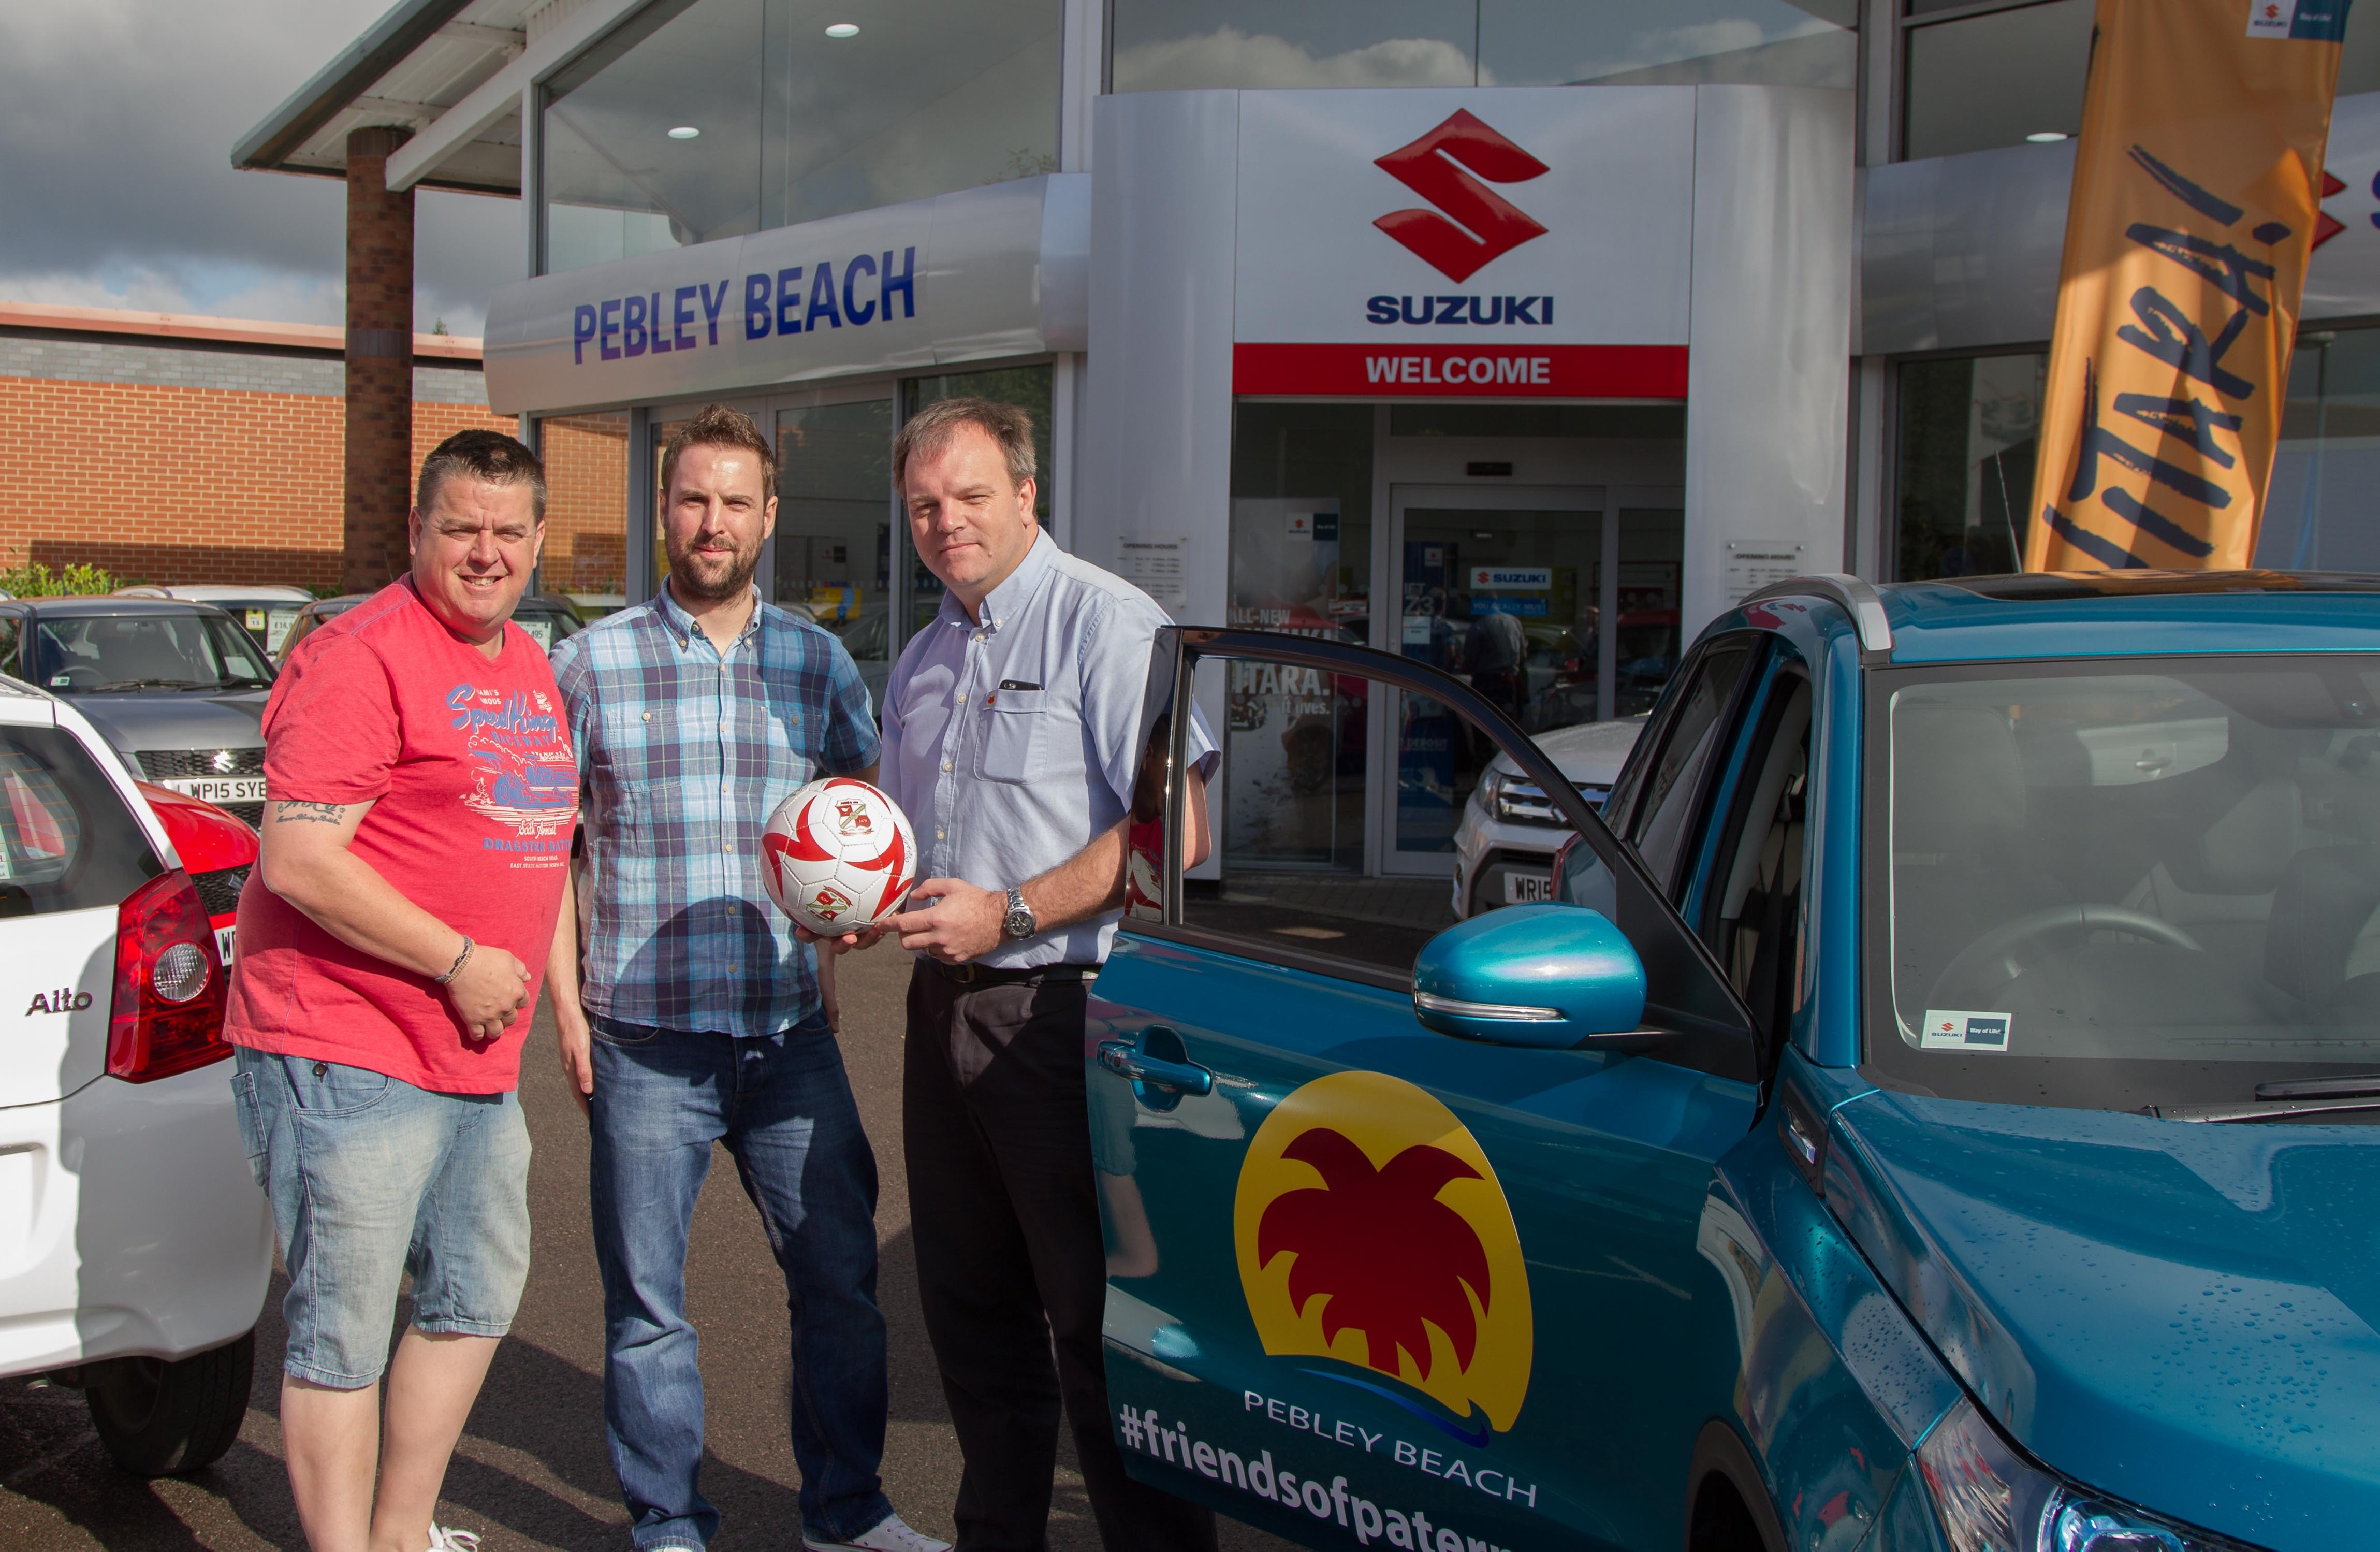 Soccer-mad family Do The 92 in  Suzuki from Pebley Beach